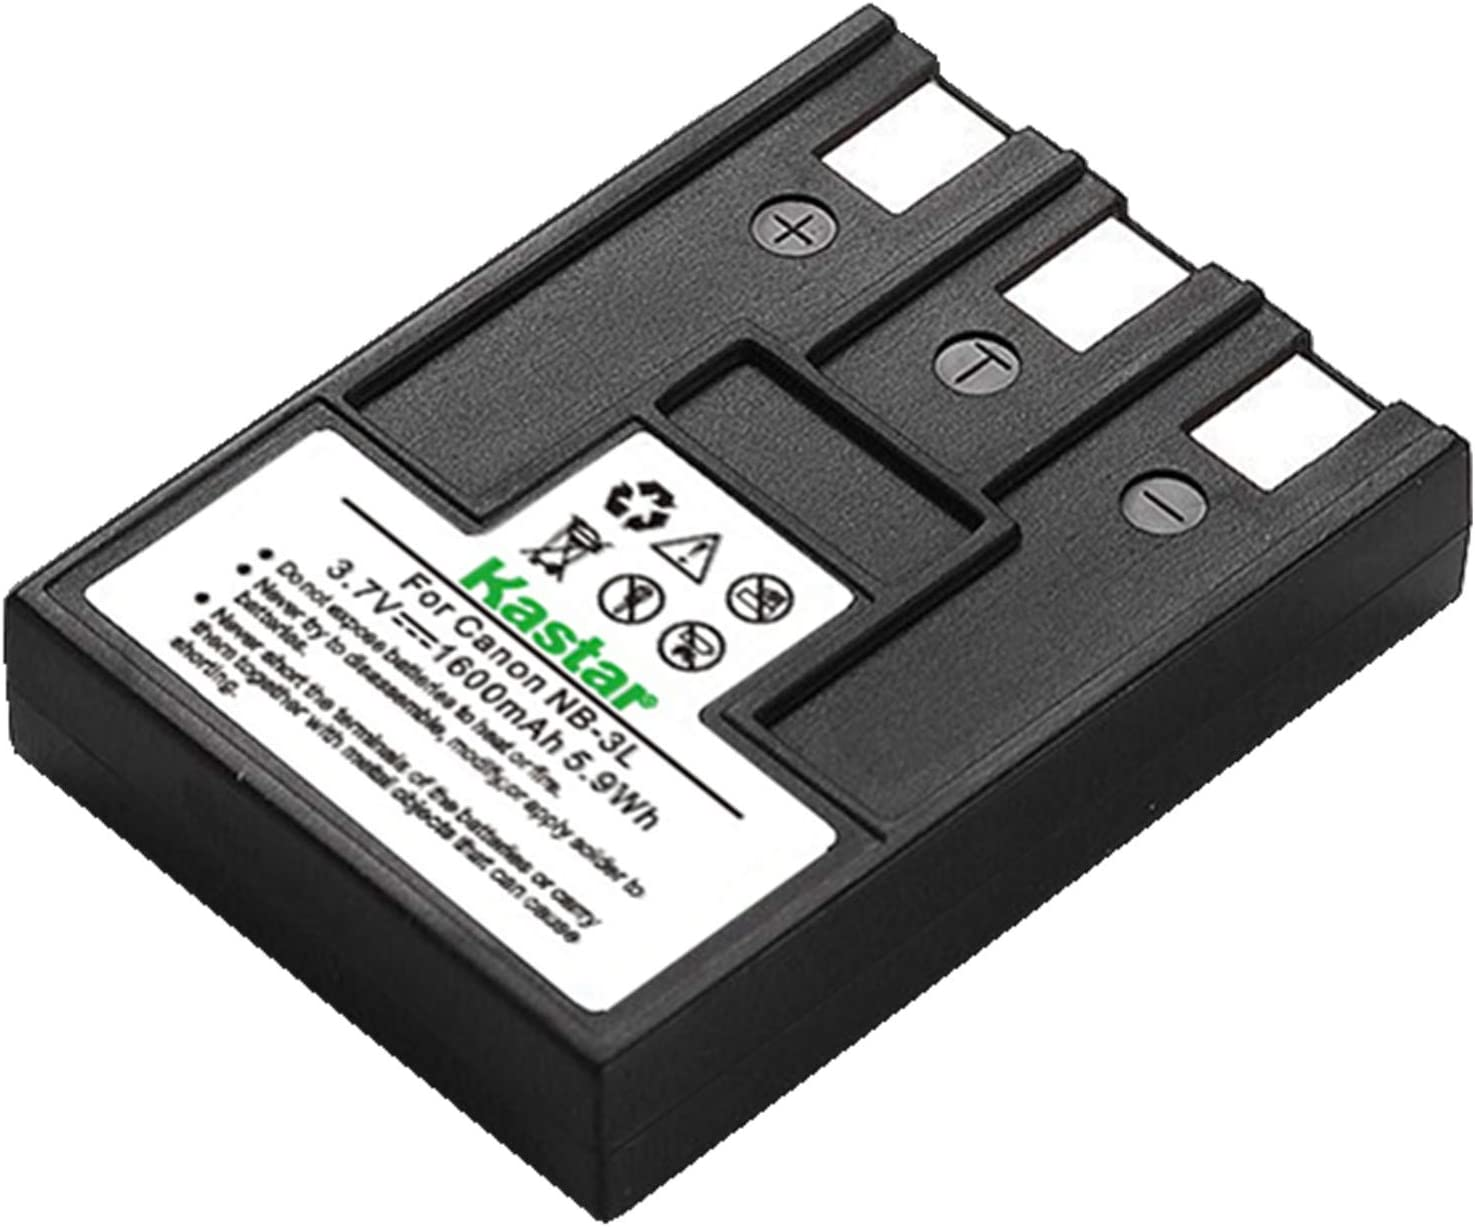 NB-3L Battery compatible with Canon ixus 700 750 PowerShot SD10 SD20